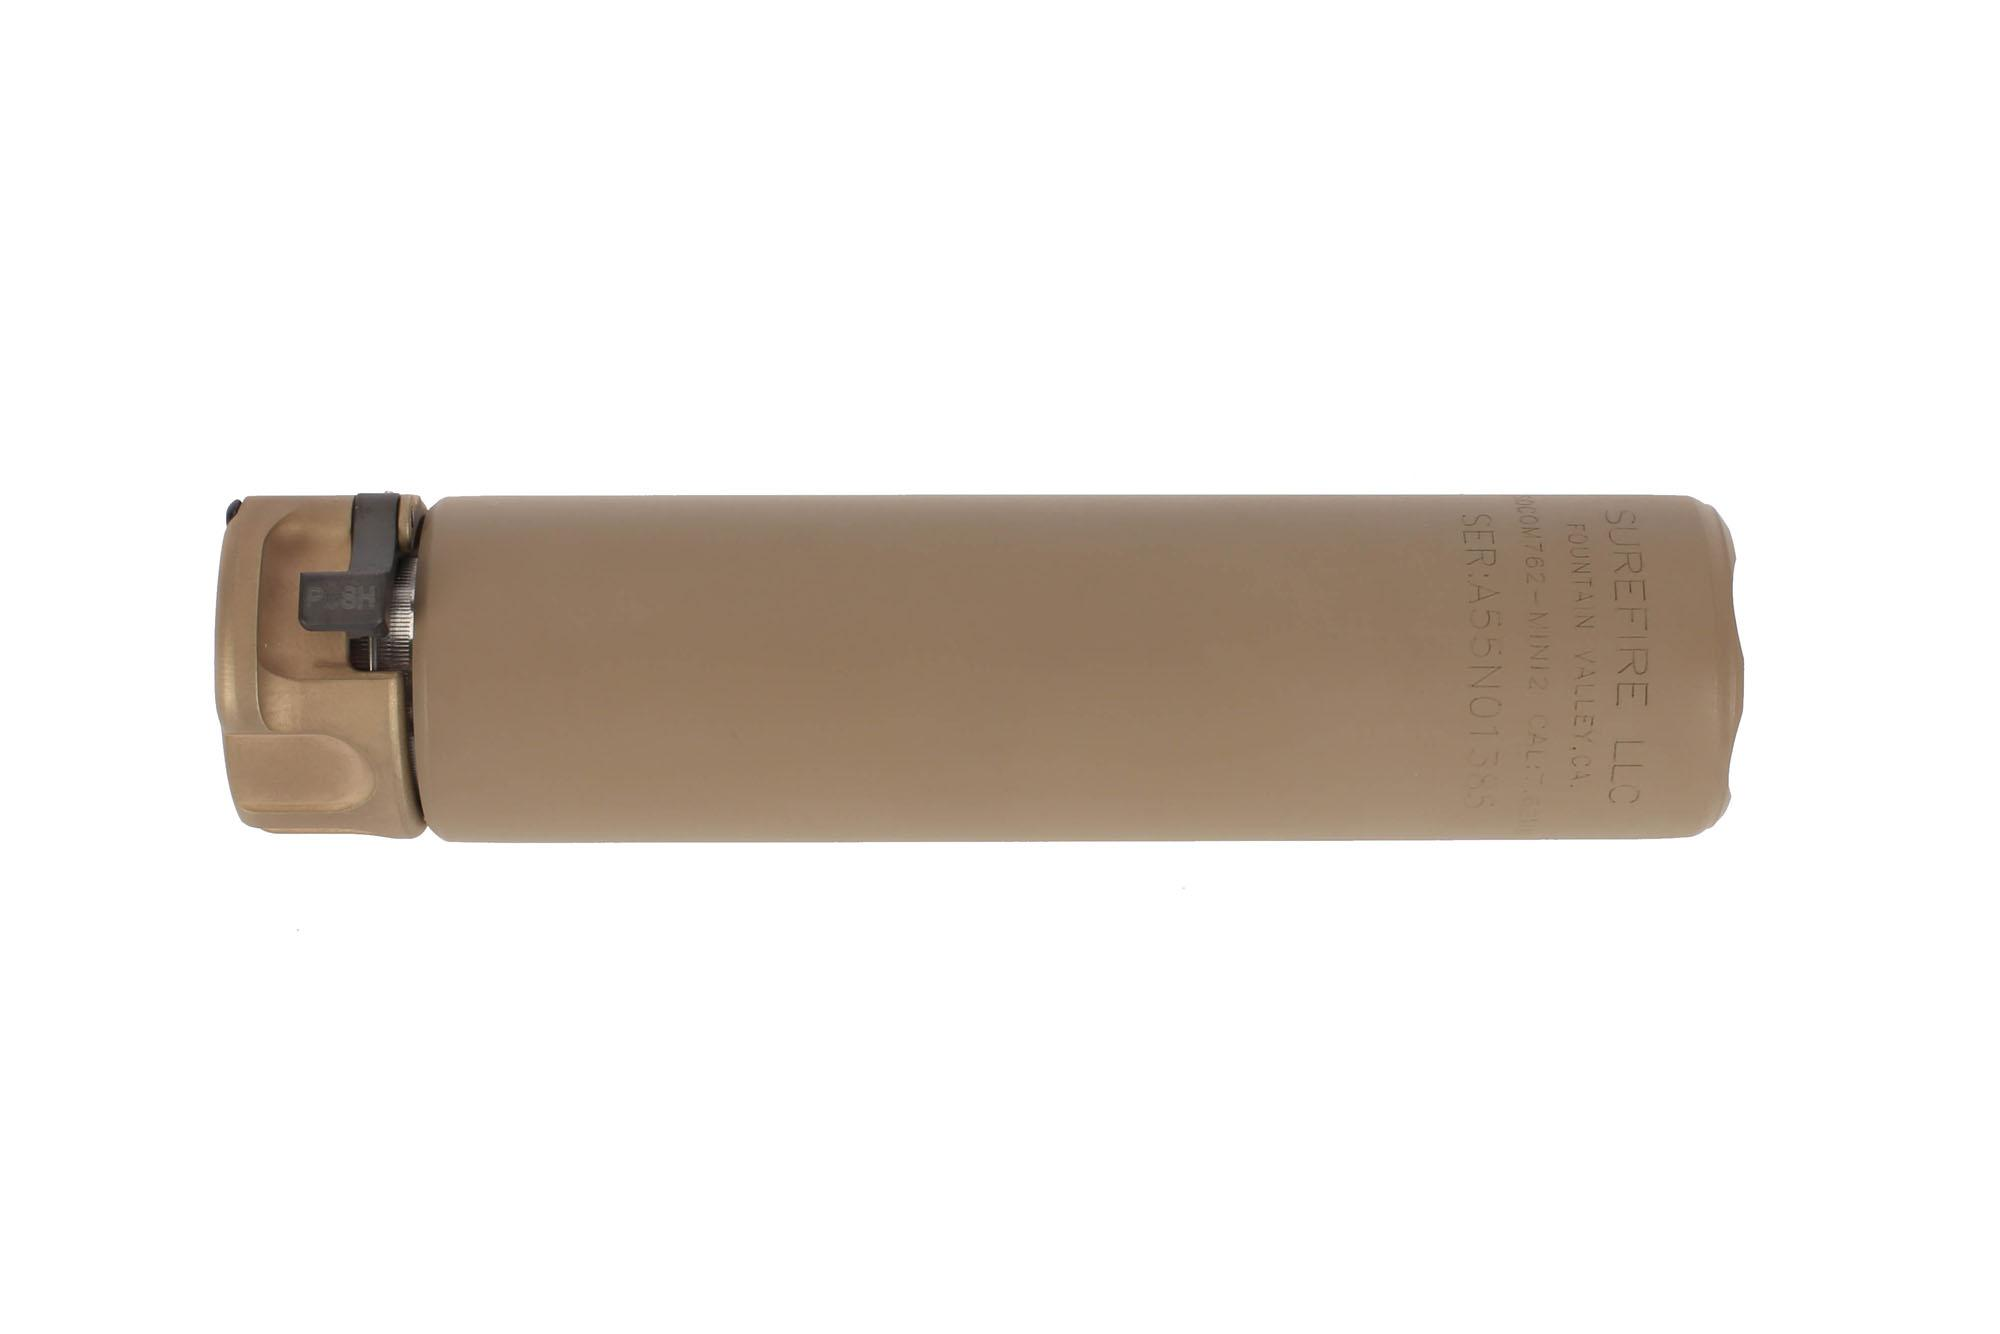 SureFire's FDE Fast Attach SOCOM 7.62 MINI2 Compact rifle sound suppressor is just 5 inches long